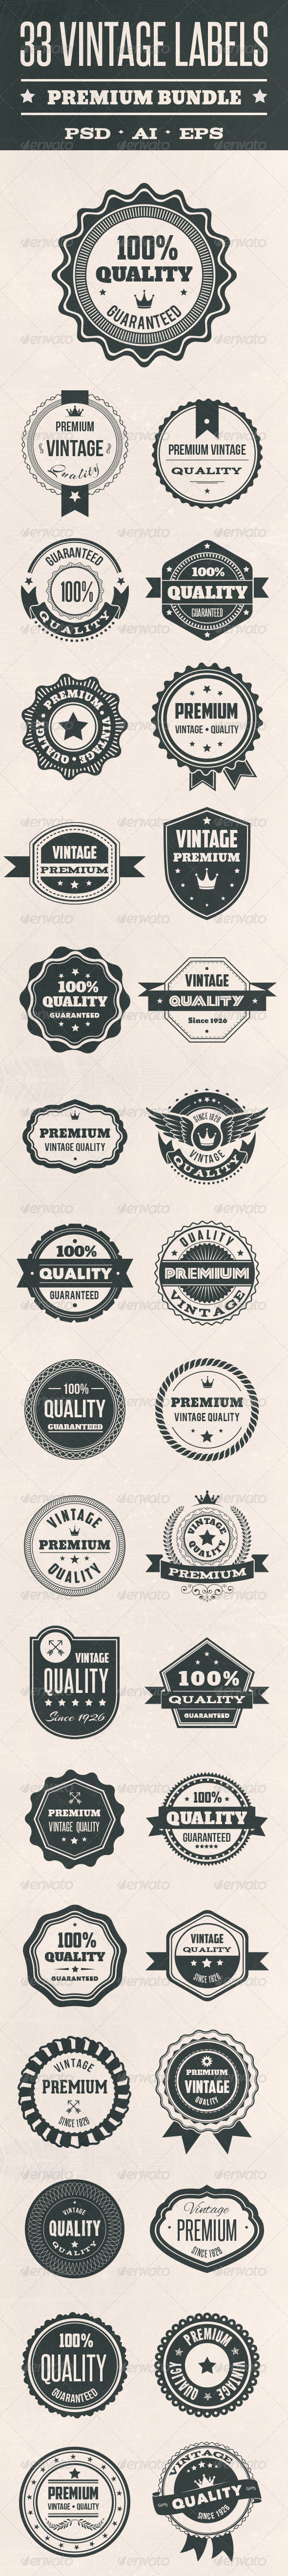 GraphicRiver 33 Vintage Labels 8245969